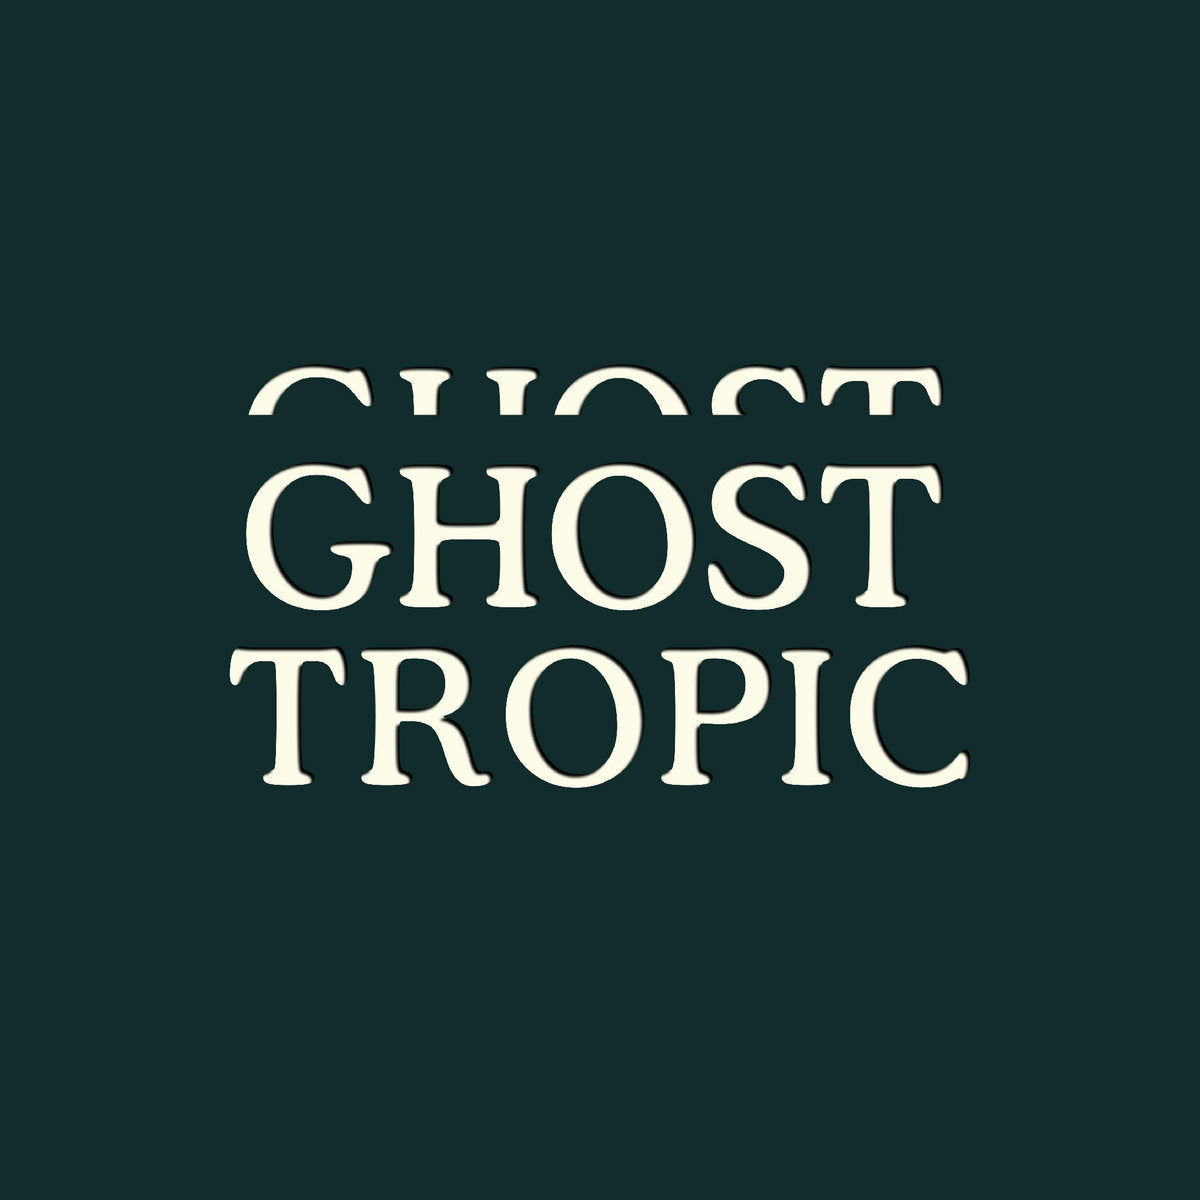 Brecht Ameel - Ghost Tropic LP